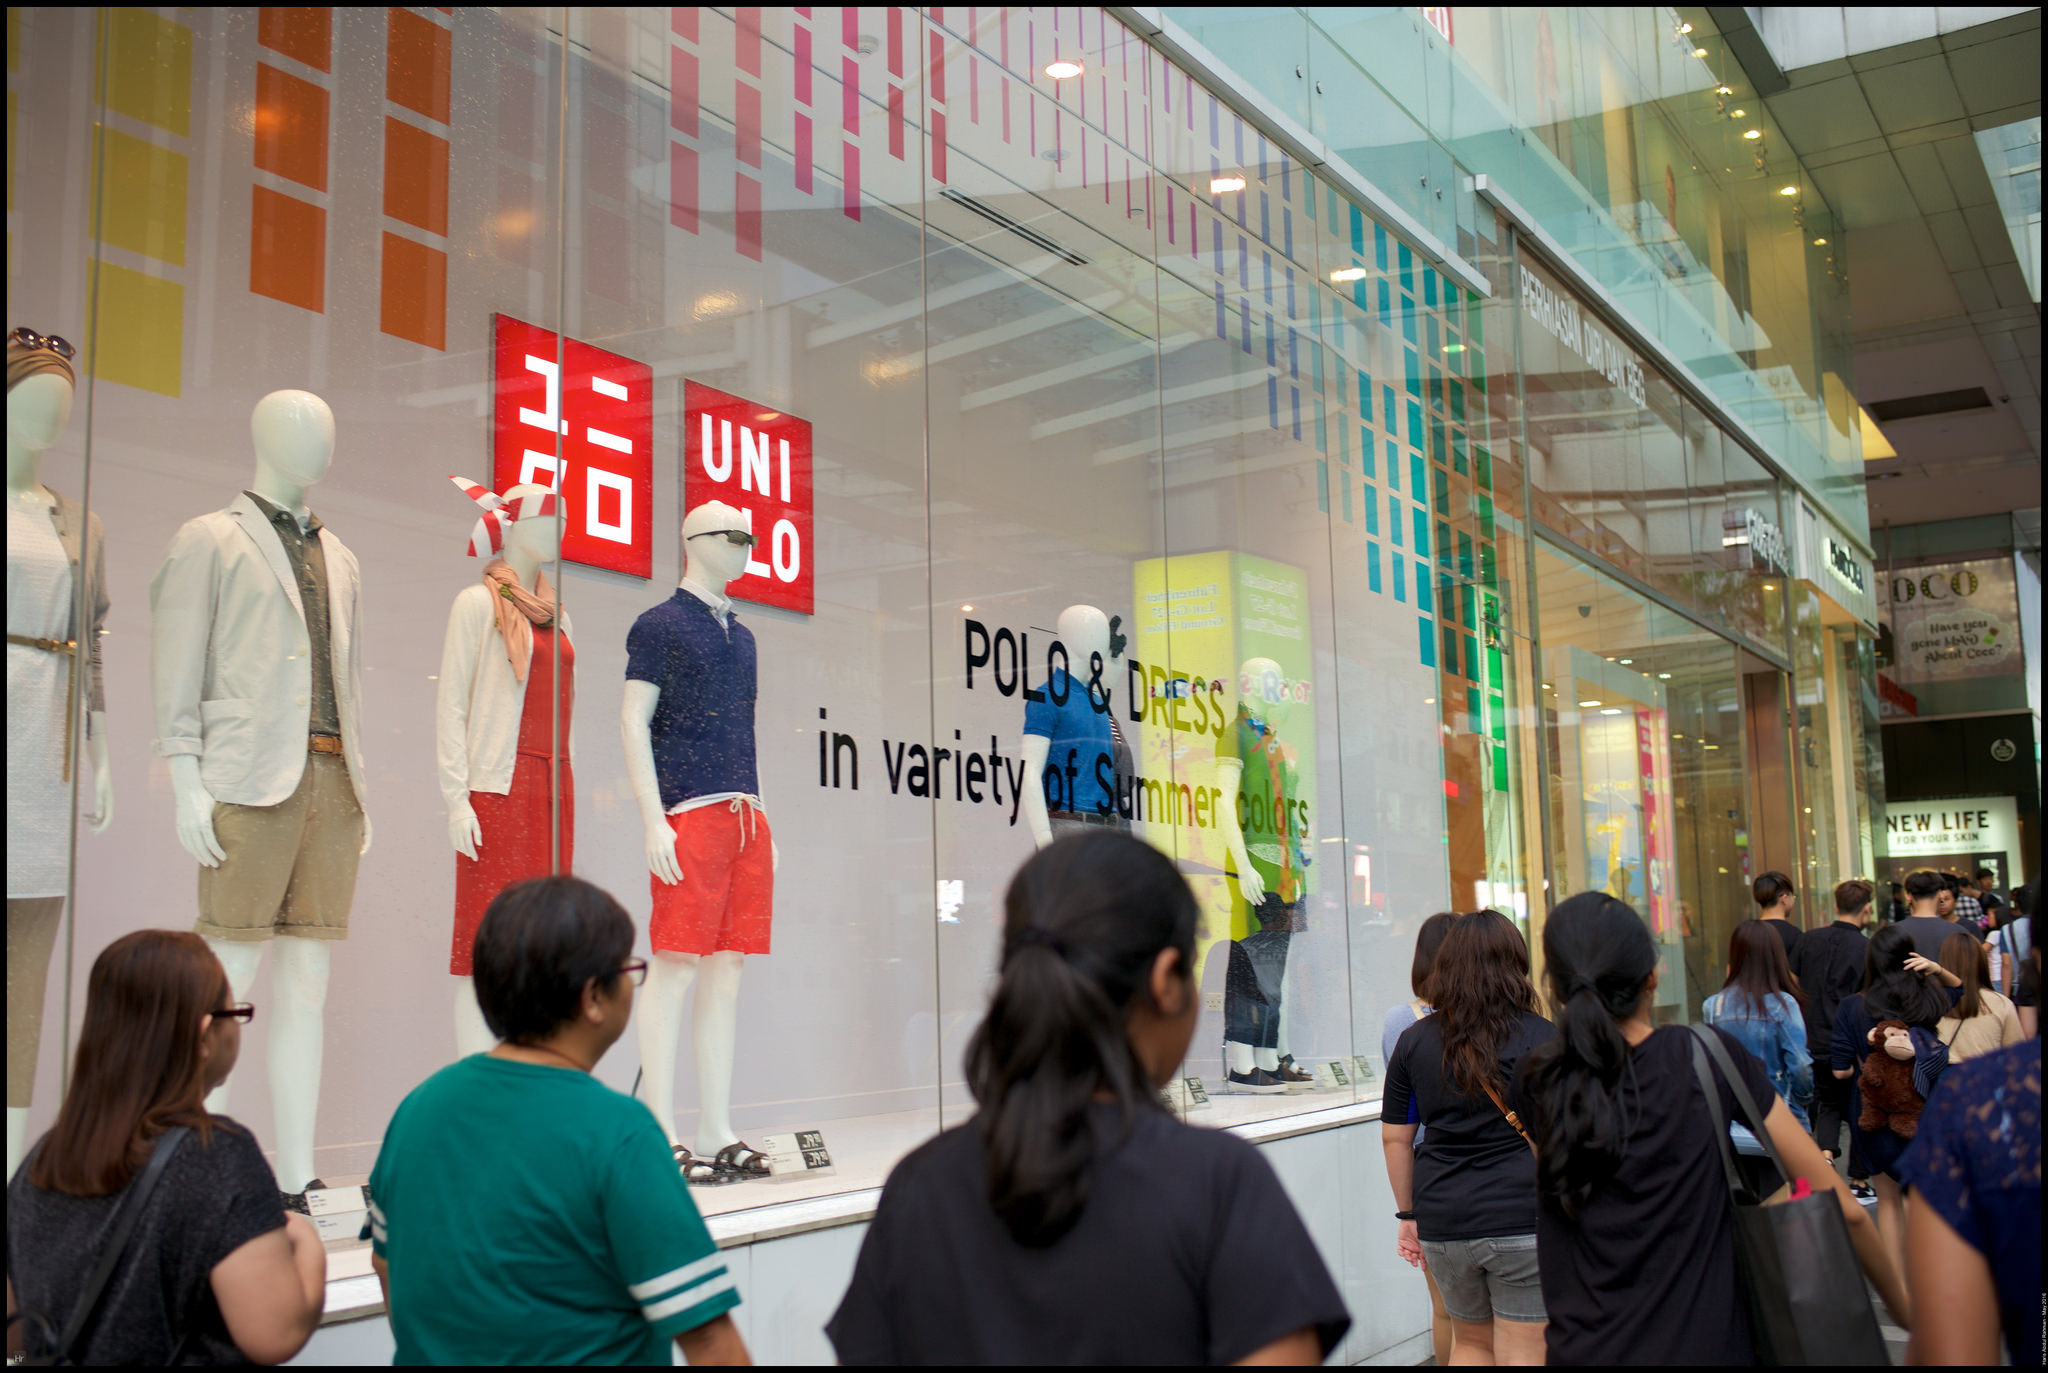 Of all the Uniqlo outlets in KL, I rate this as the best ....